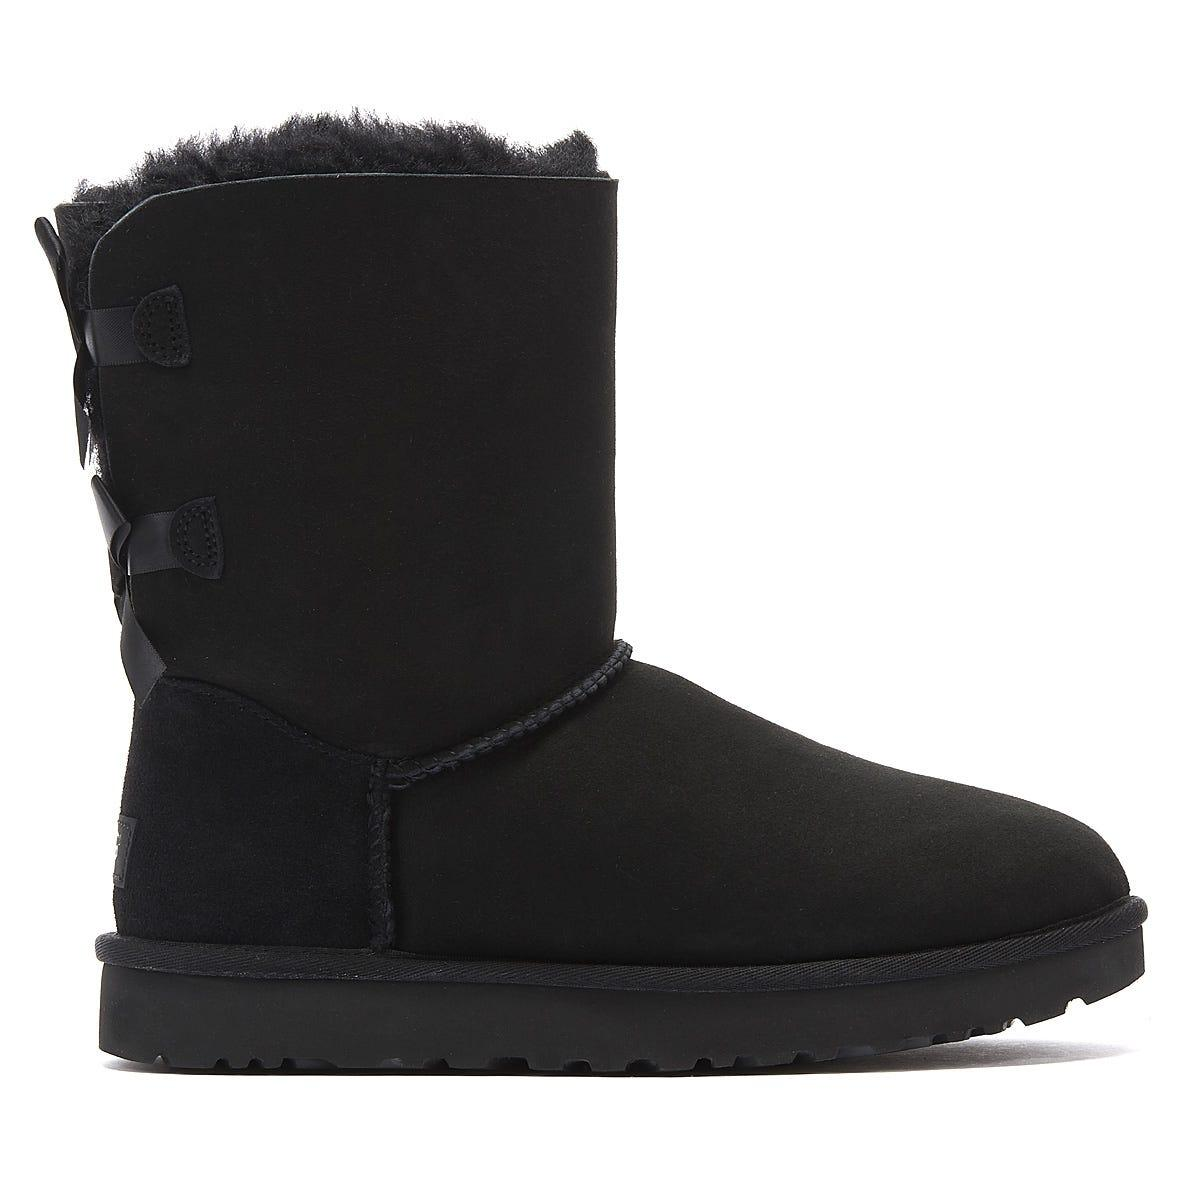 UGG Suede Shaina Classic Knit Boots in Black Suede (Black)